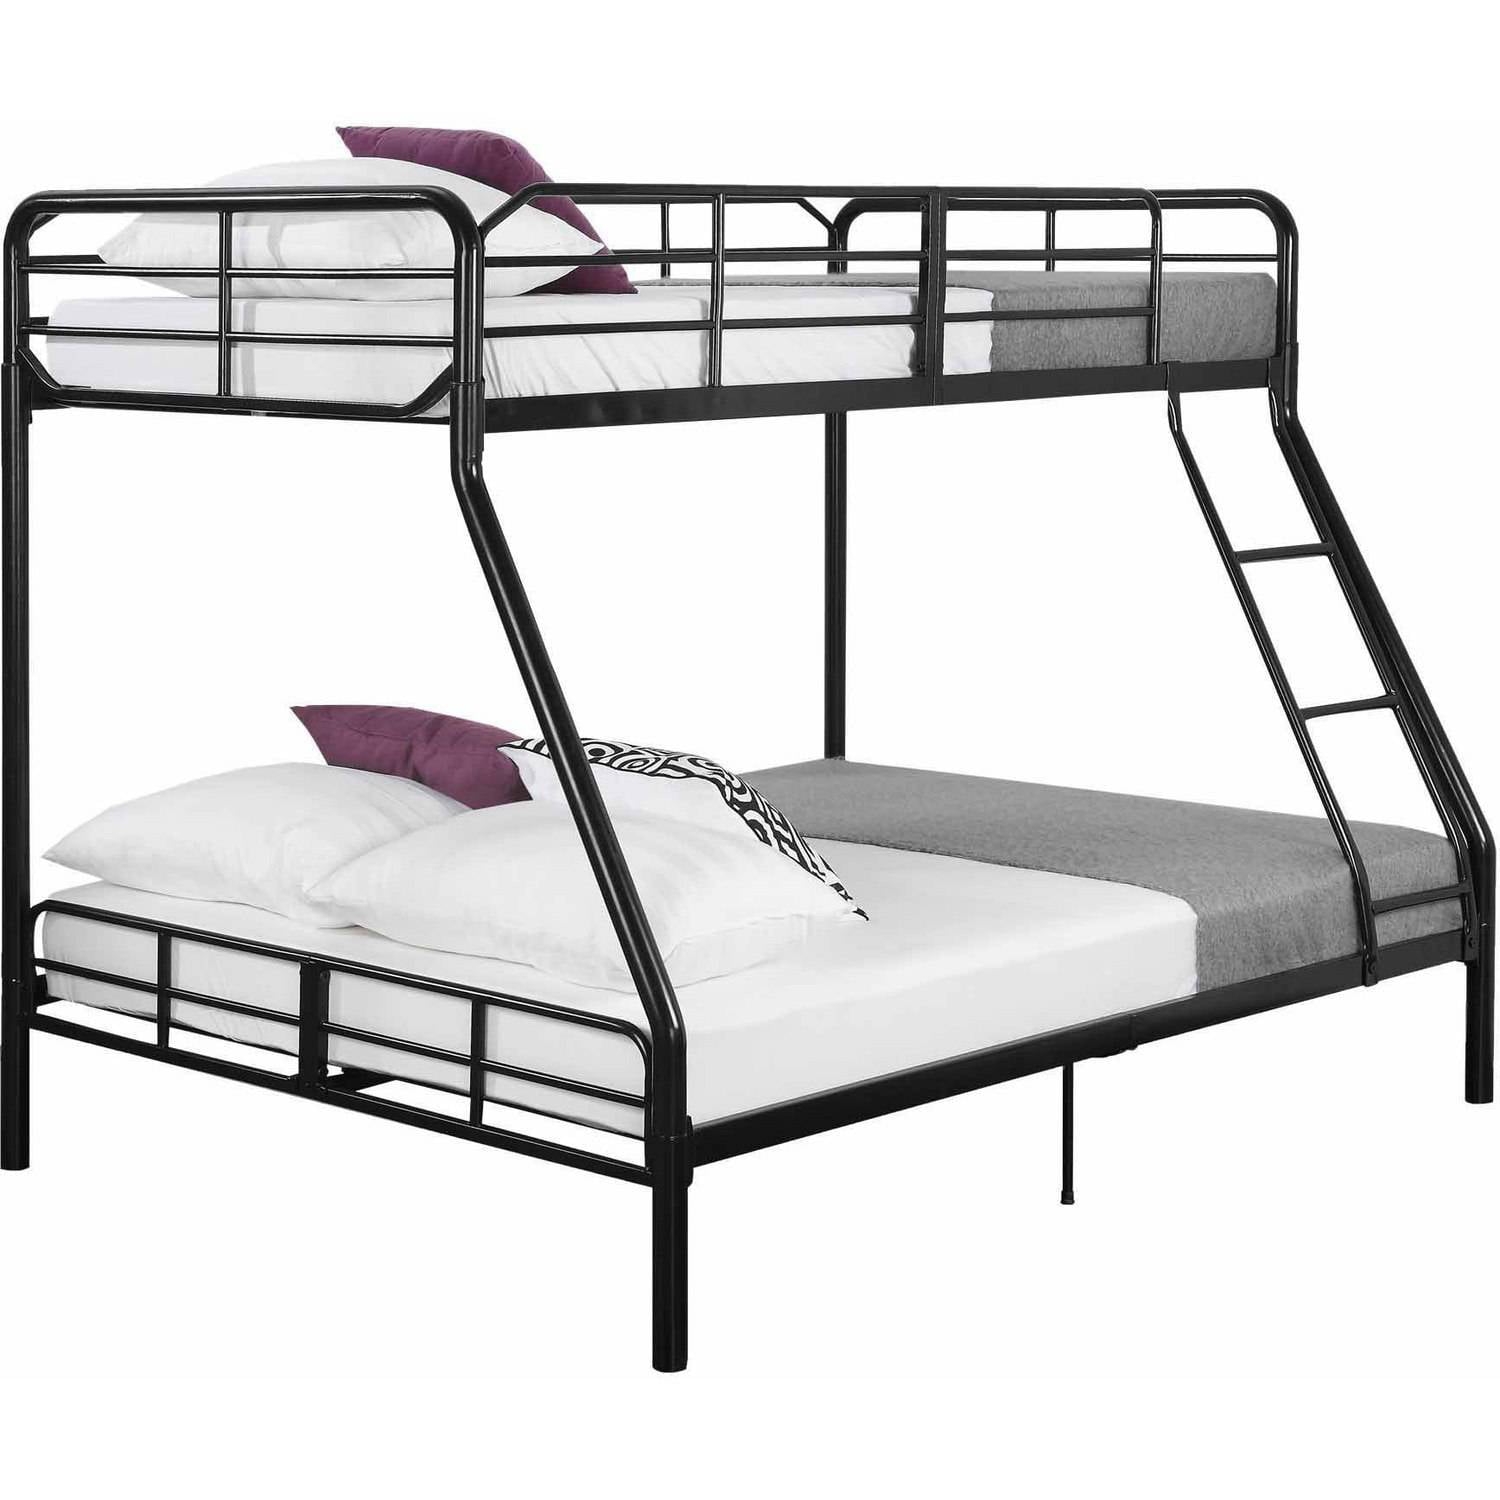 products coaster bedstwin beds dunk ladders twin width metal full threshold over trim with bunk bed height item side